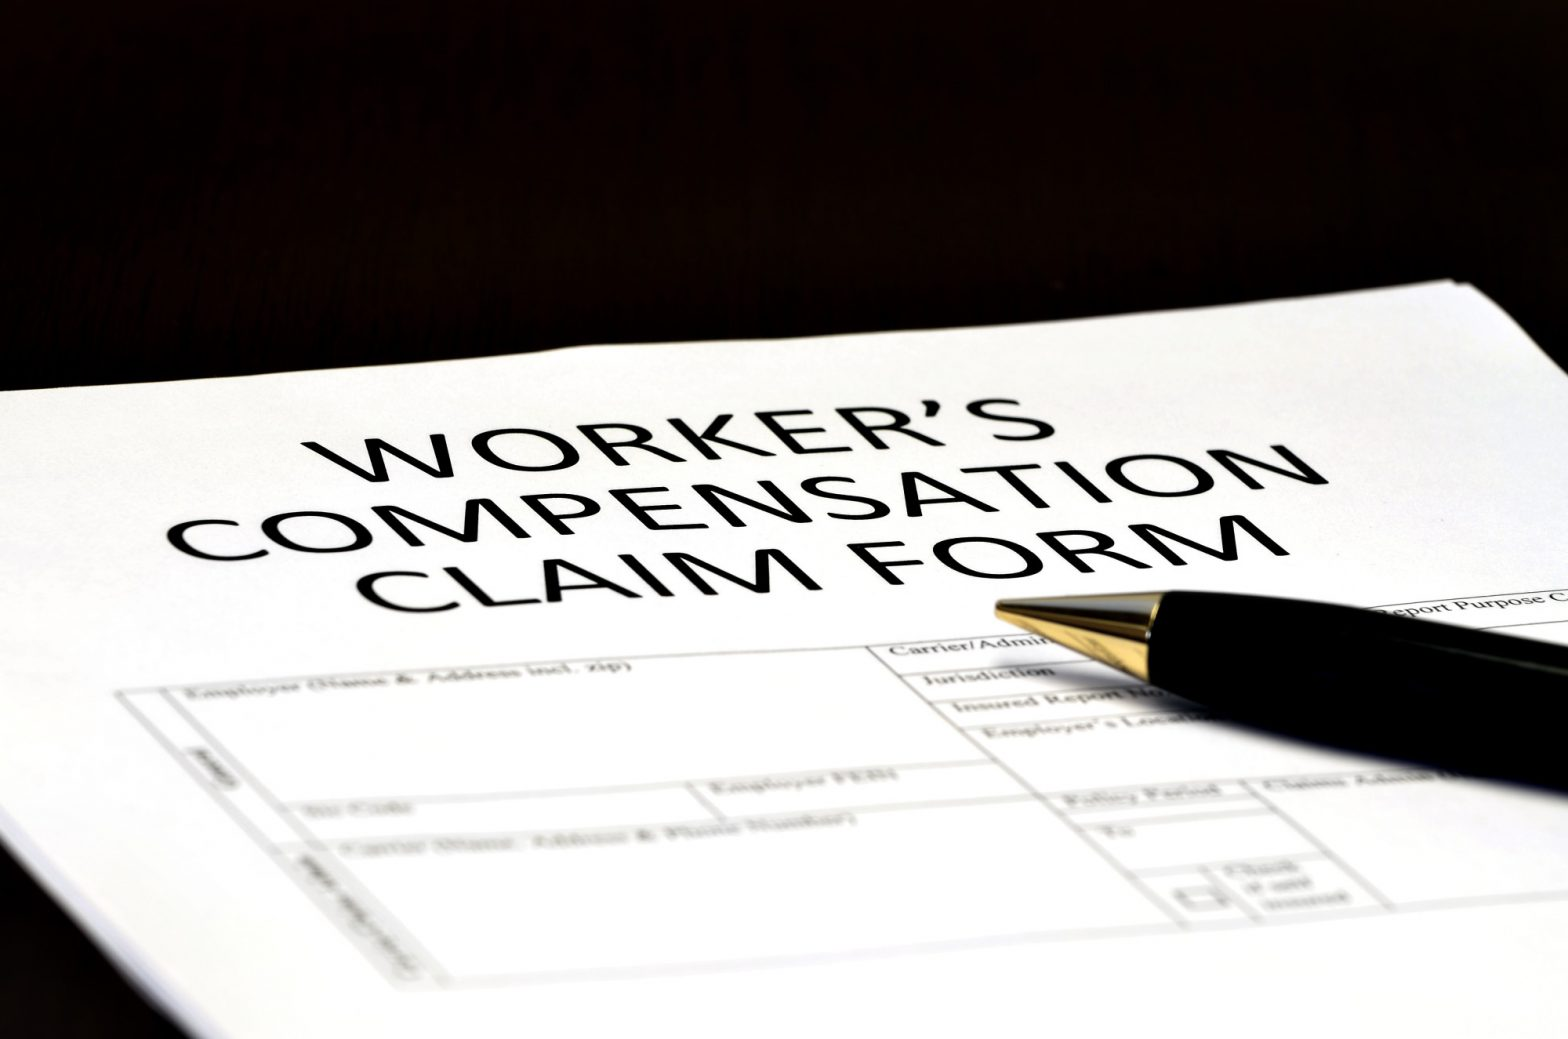 Workers' Compensation Insurance in Florida